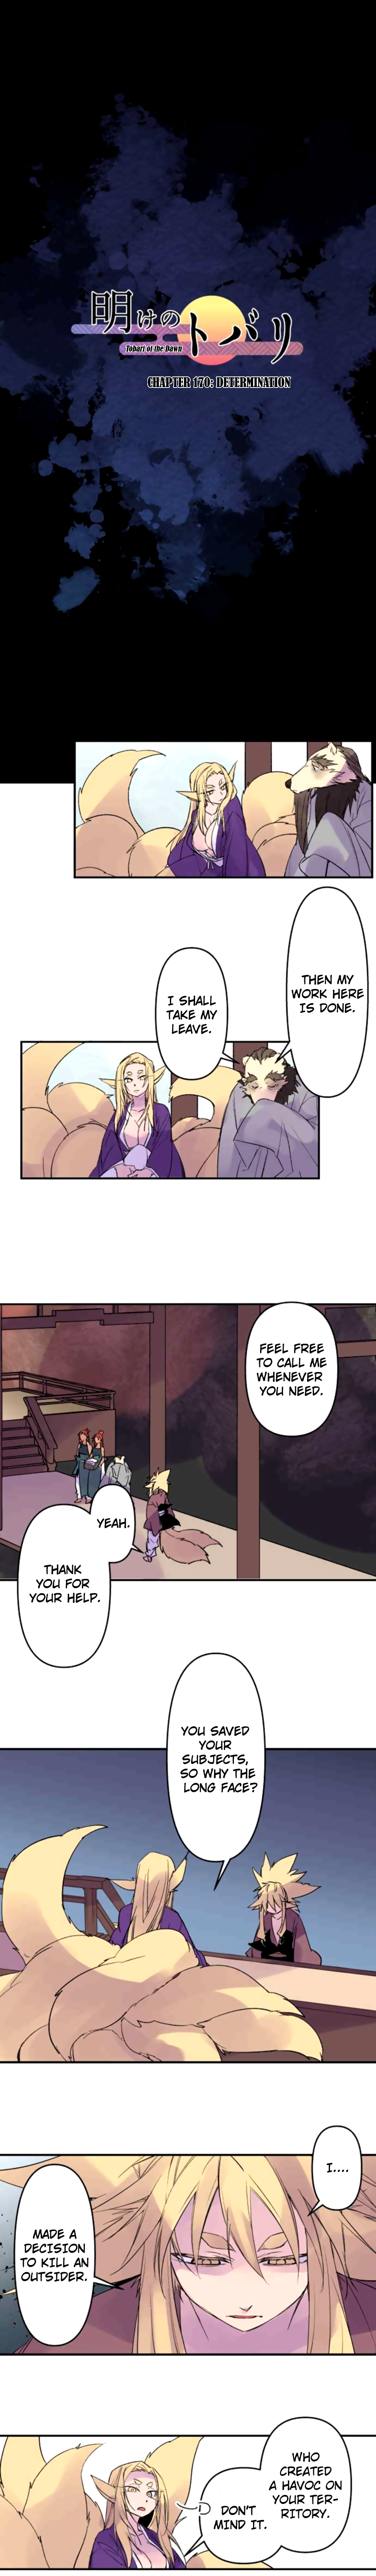 https://img2.nineanime.com/comics/pic4/6/9990/1948677/12582af78387df20a3a871d076df6844.jpg Page 1